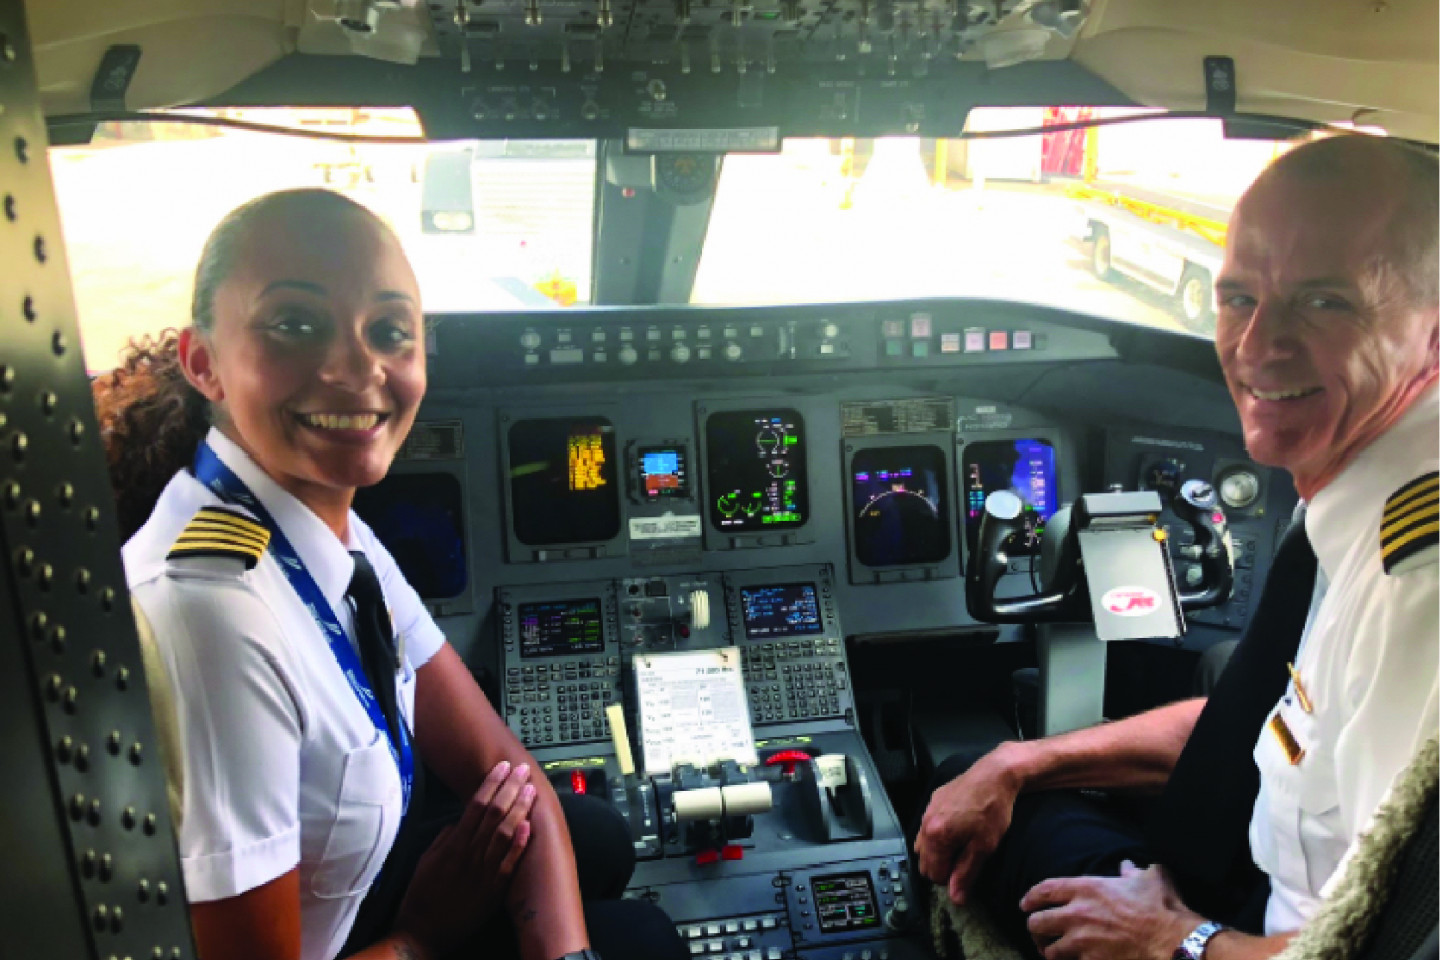 Pilot Alexis Brown sits in the cockpit of a plane.